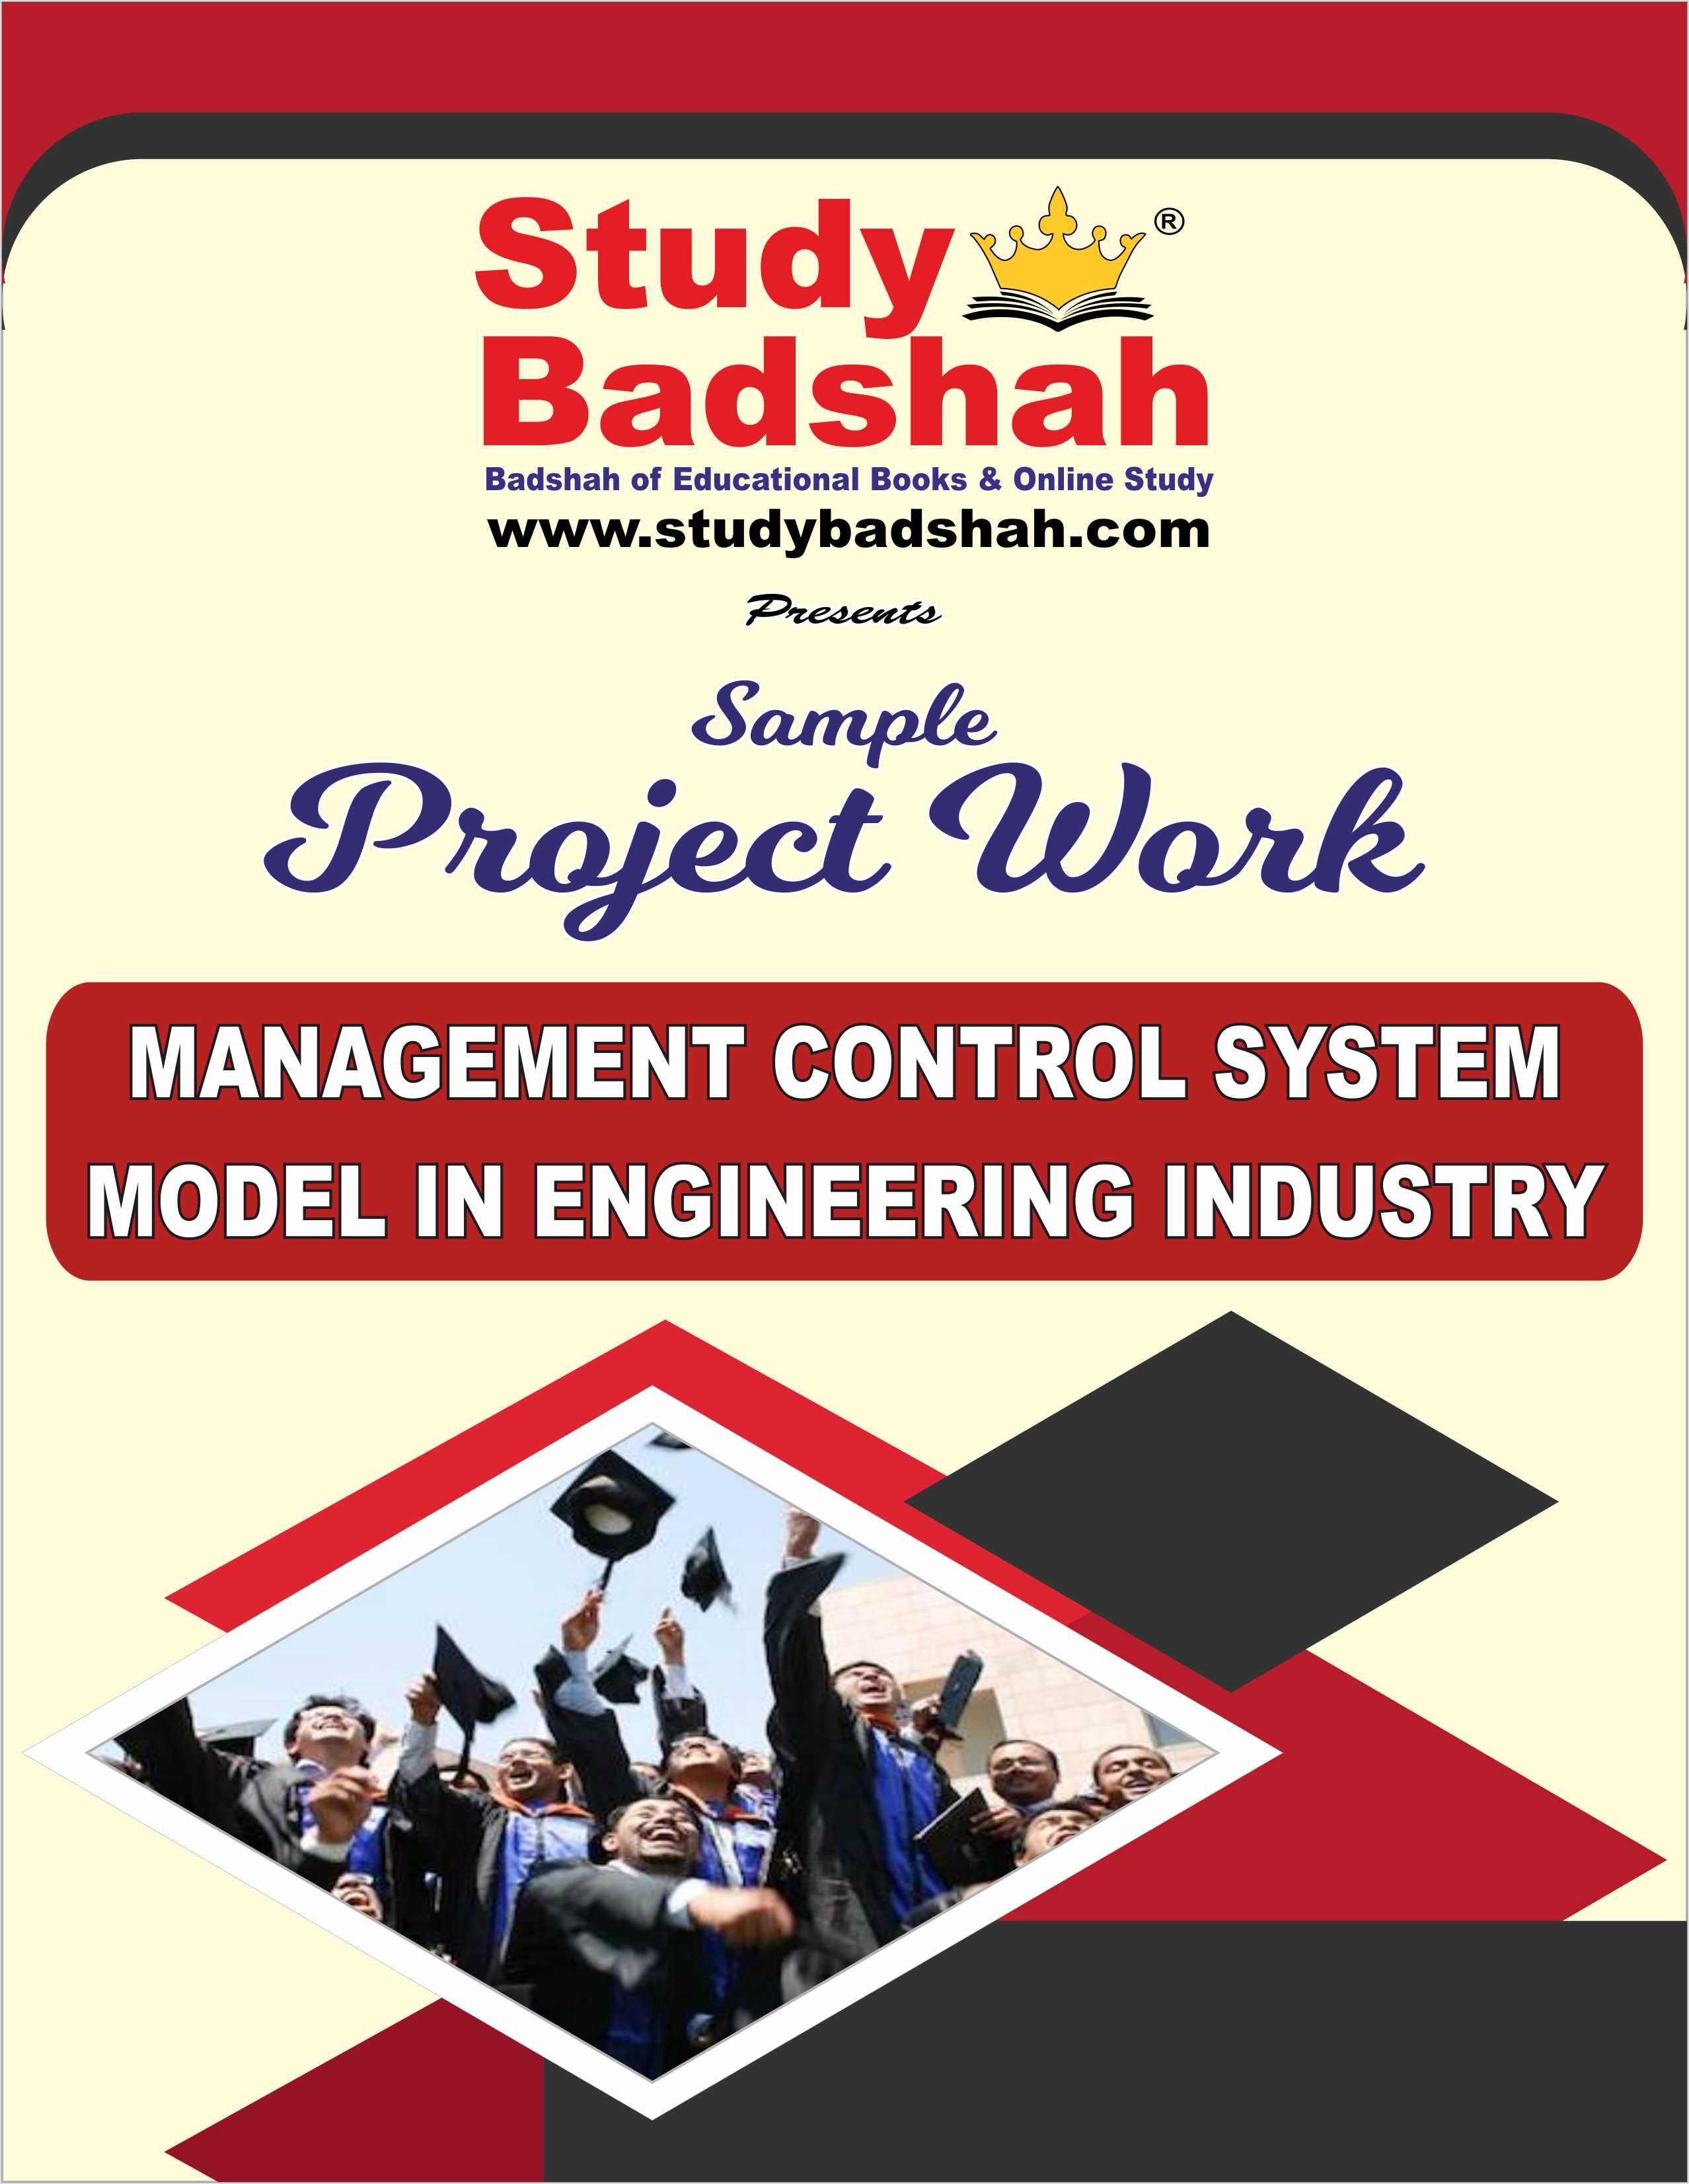 Management control system model in Engineering industry